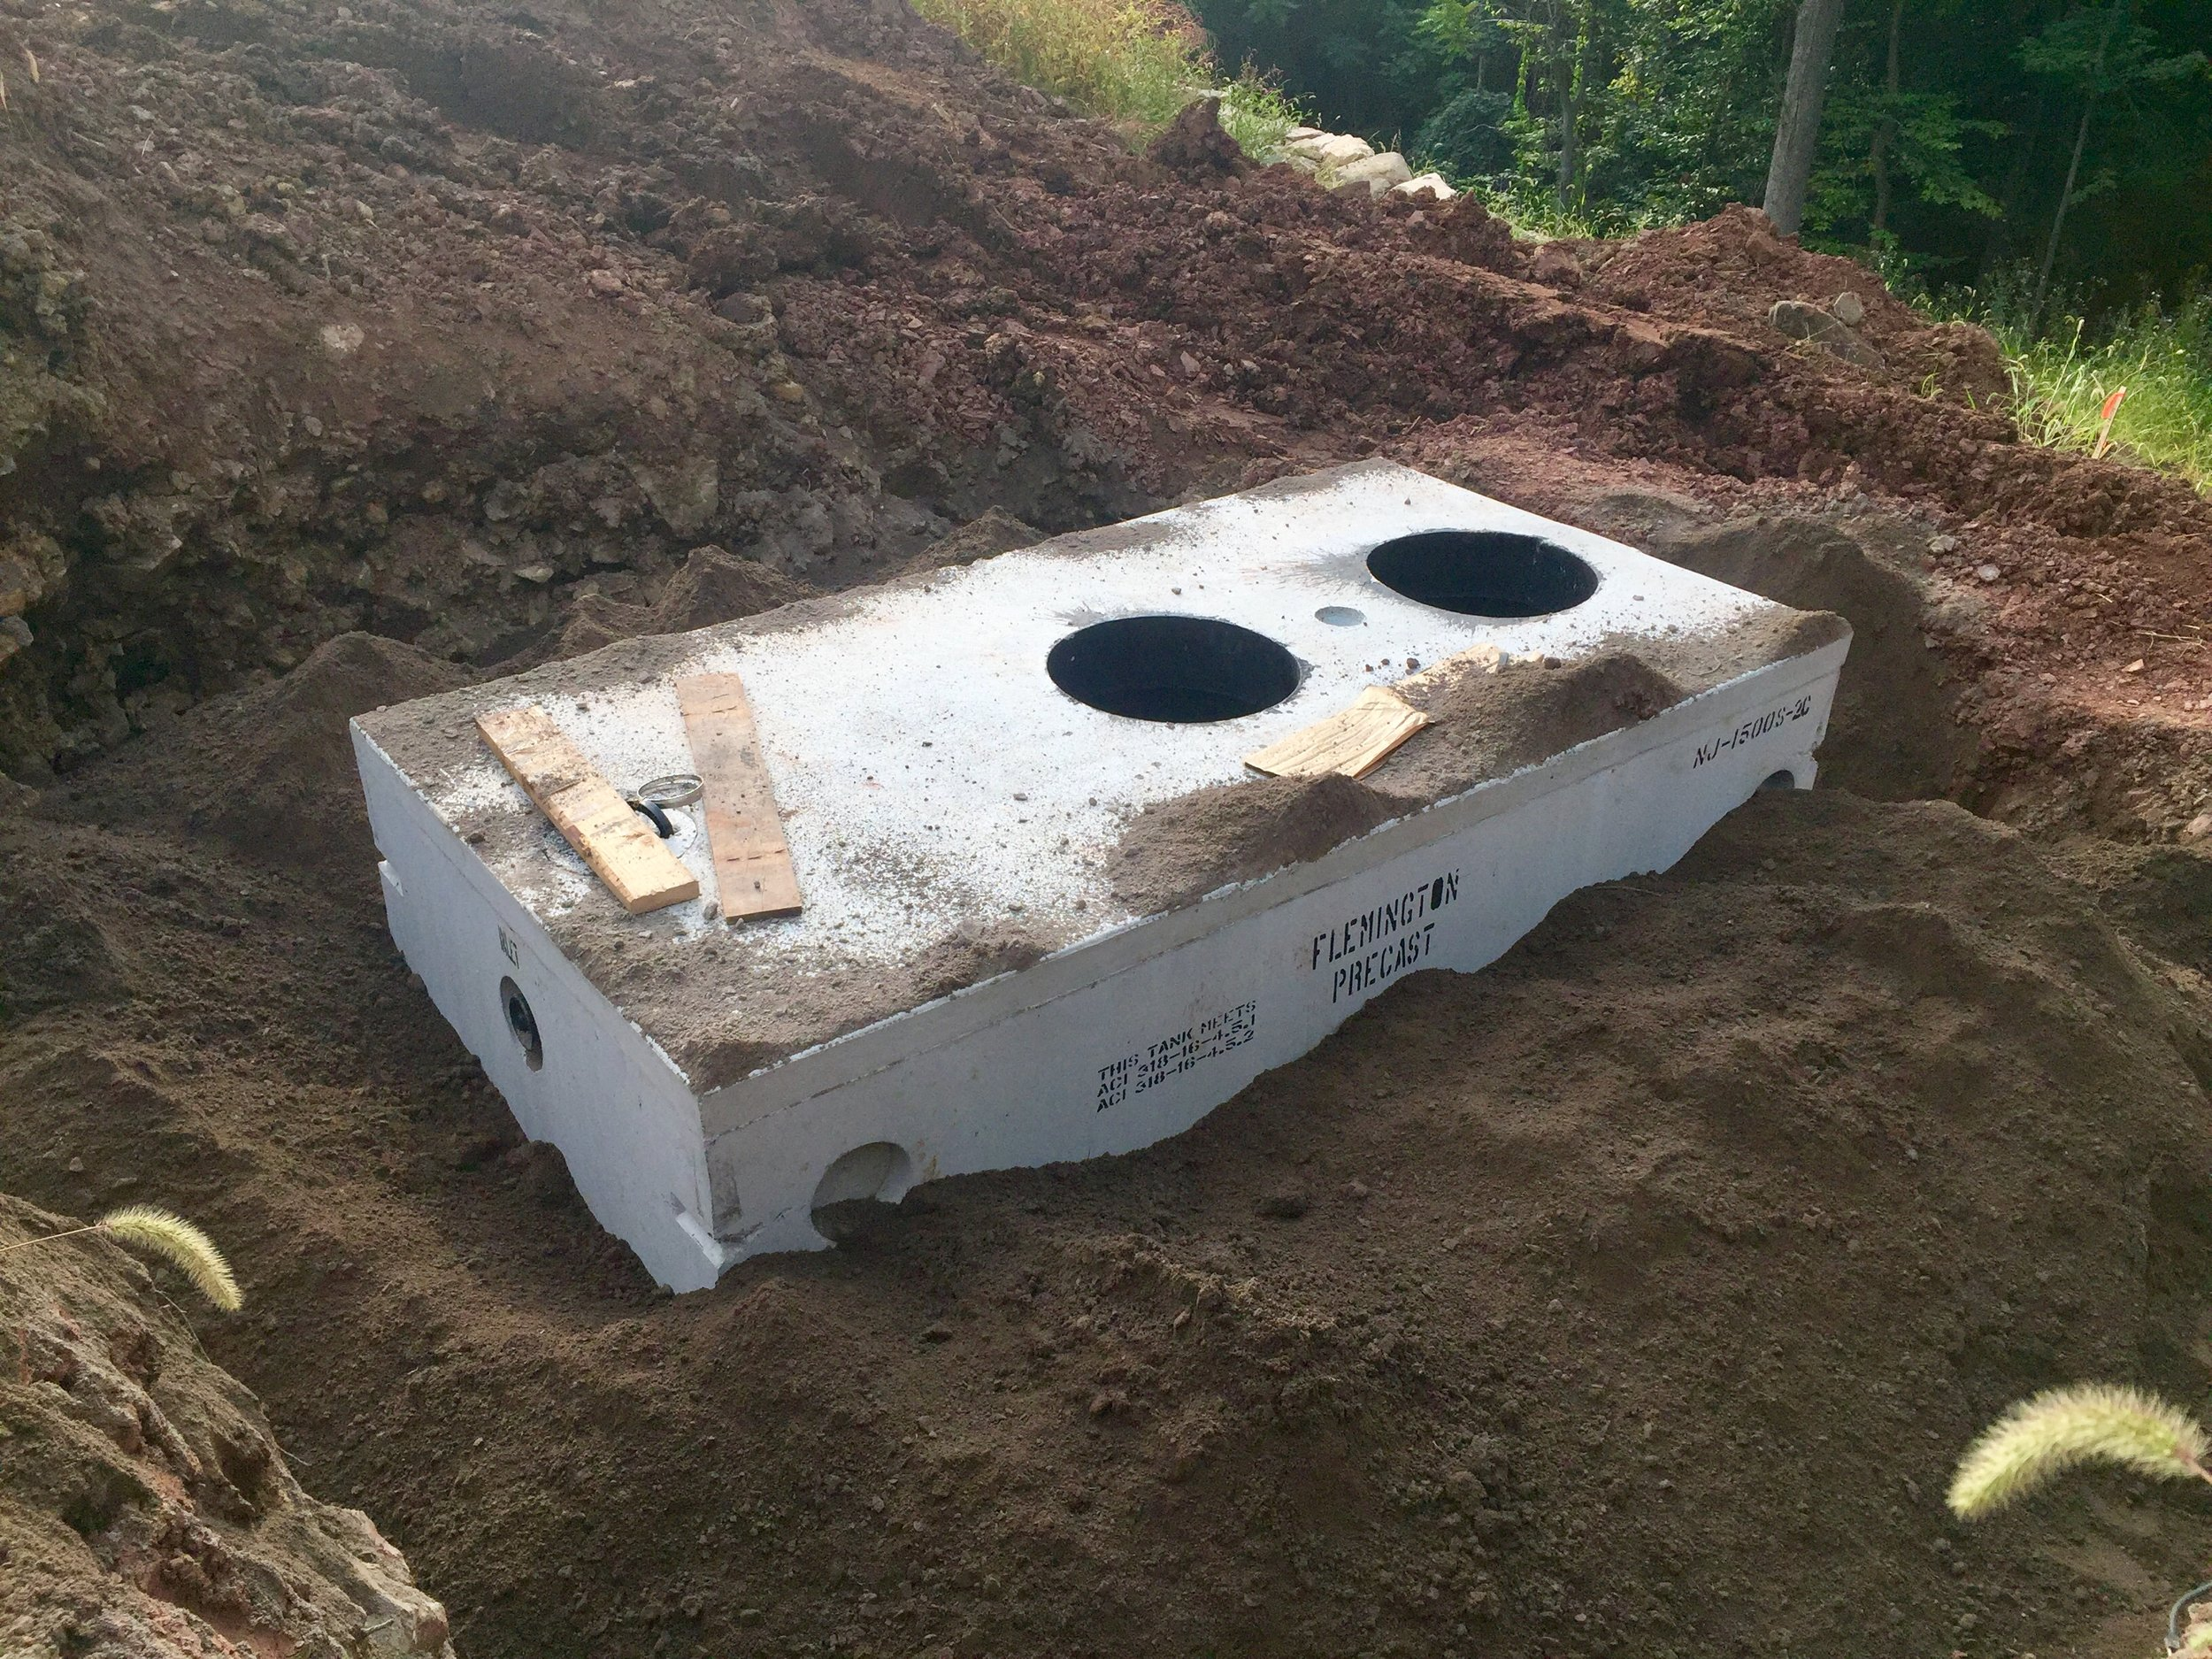 Flemington_Precast_Grease_Interceptor_Two_Compartment.jpg